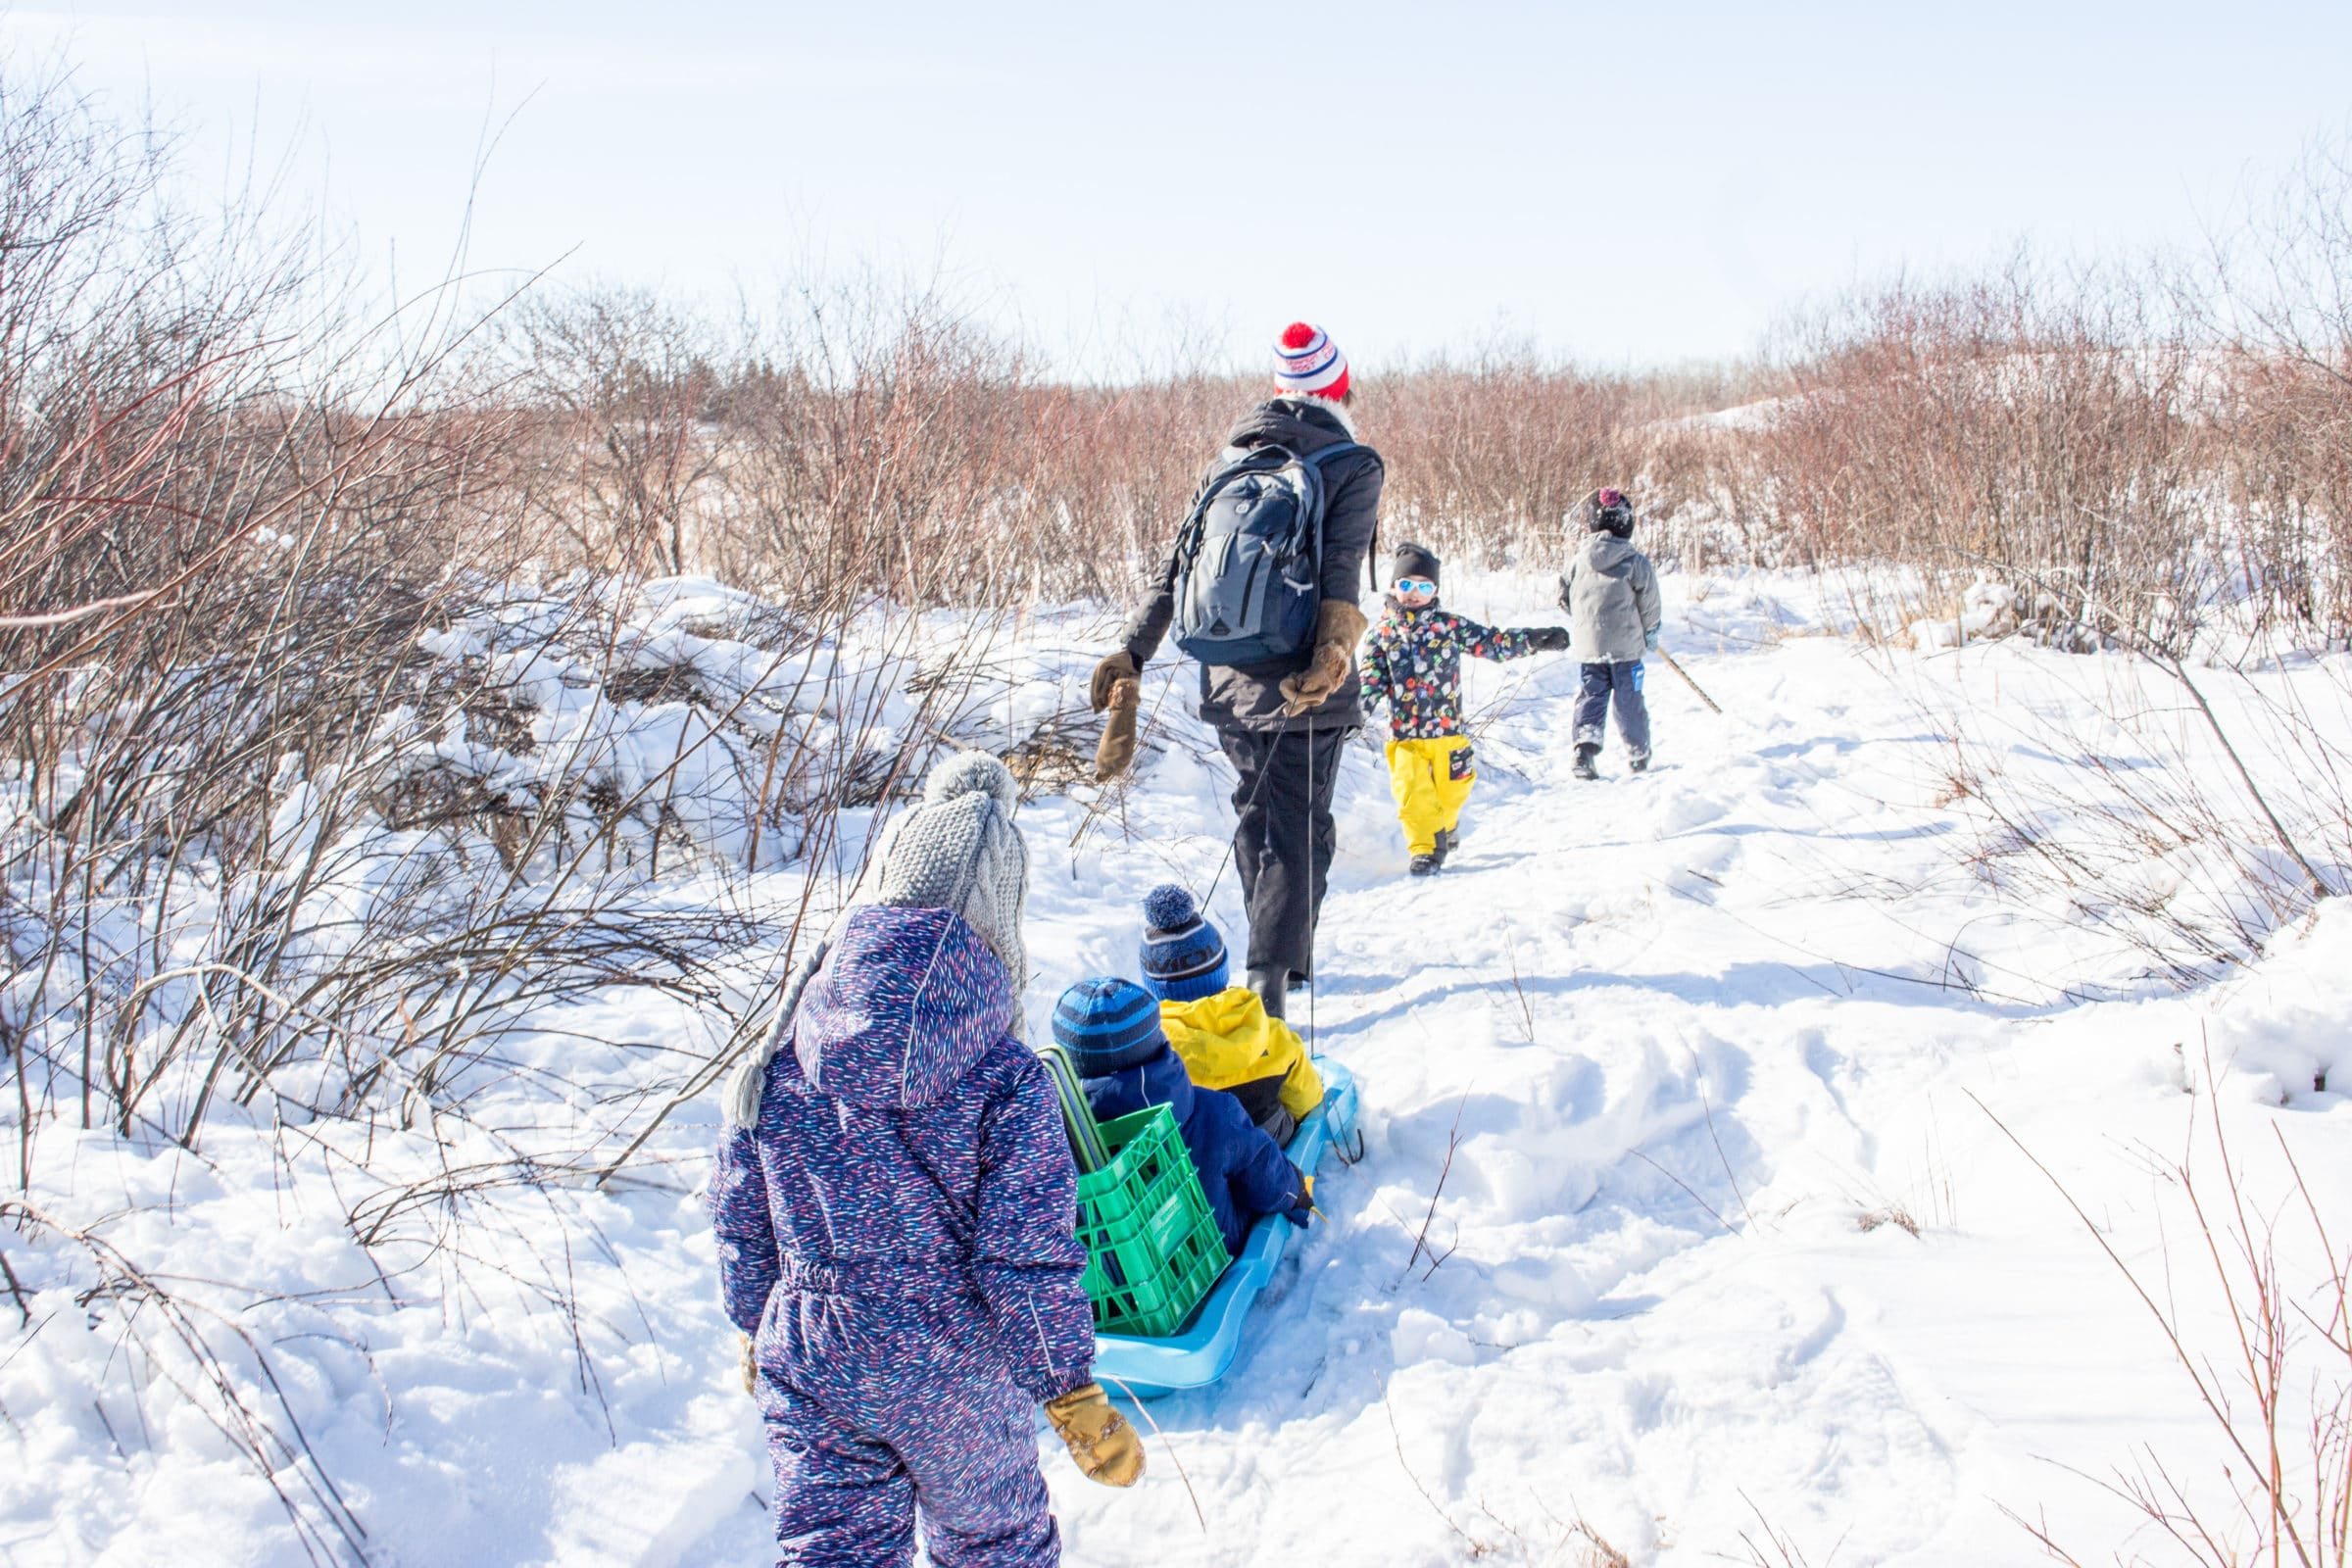 Adult pulling child in sled with other children walking in front and behind